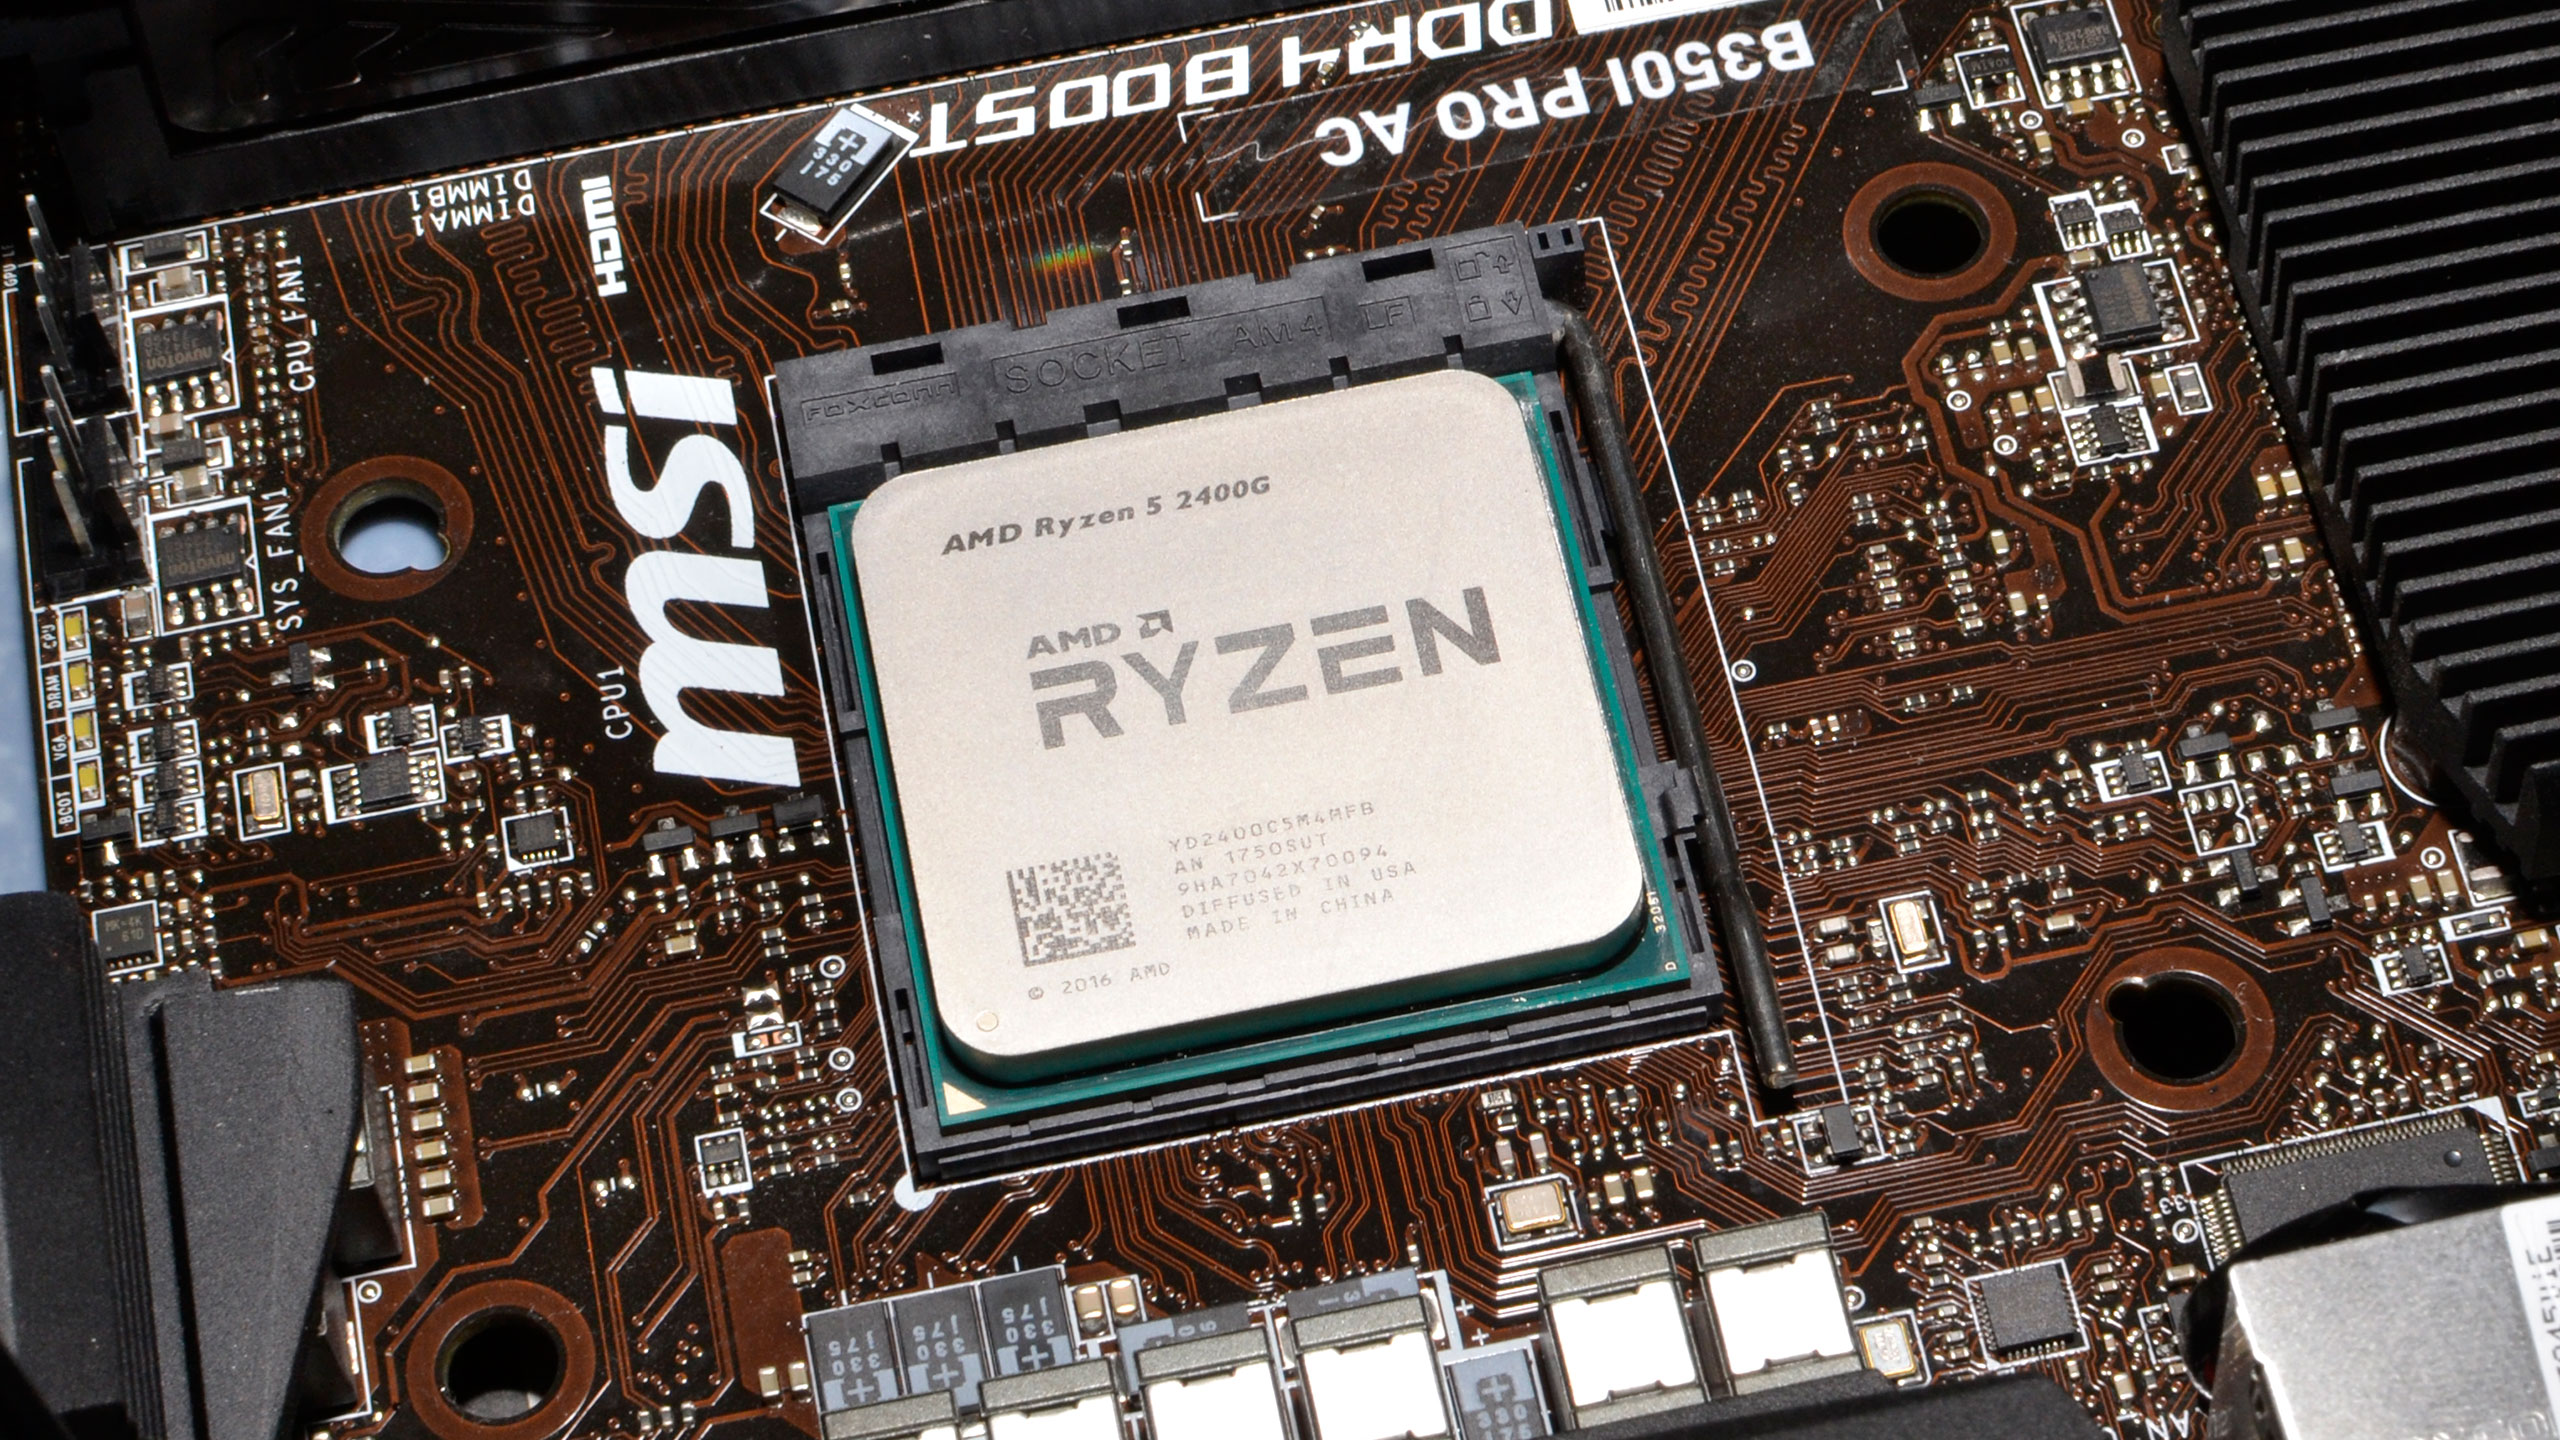 AMD's Ryzen 5 2400G is a good option for a budget gaming PC